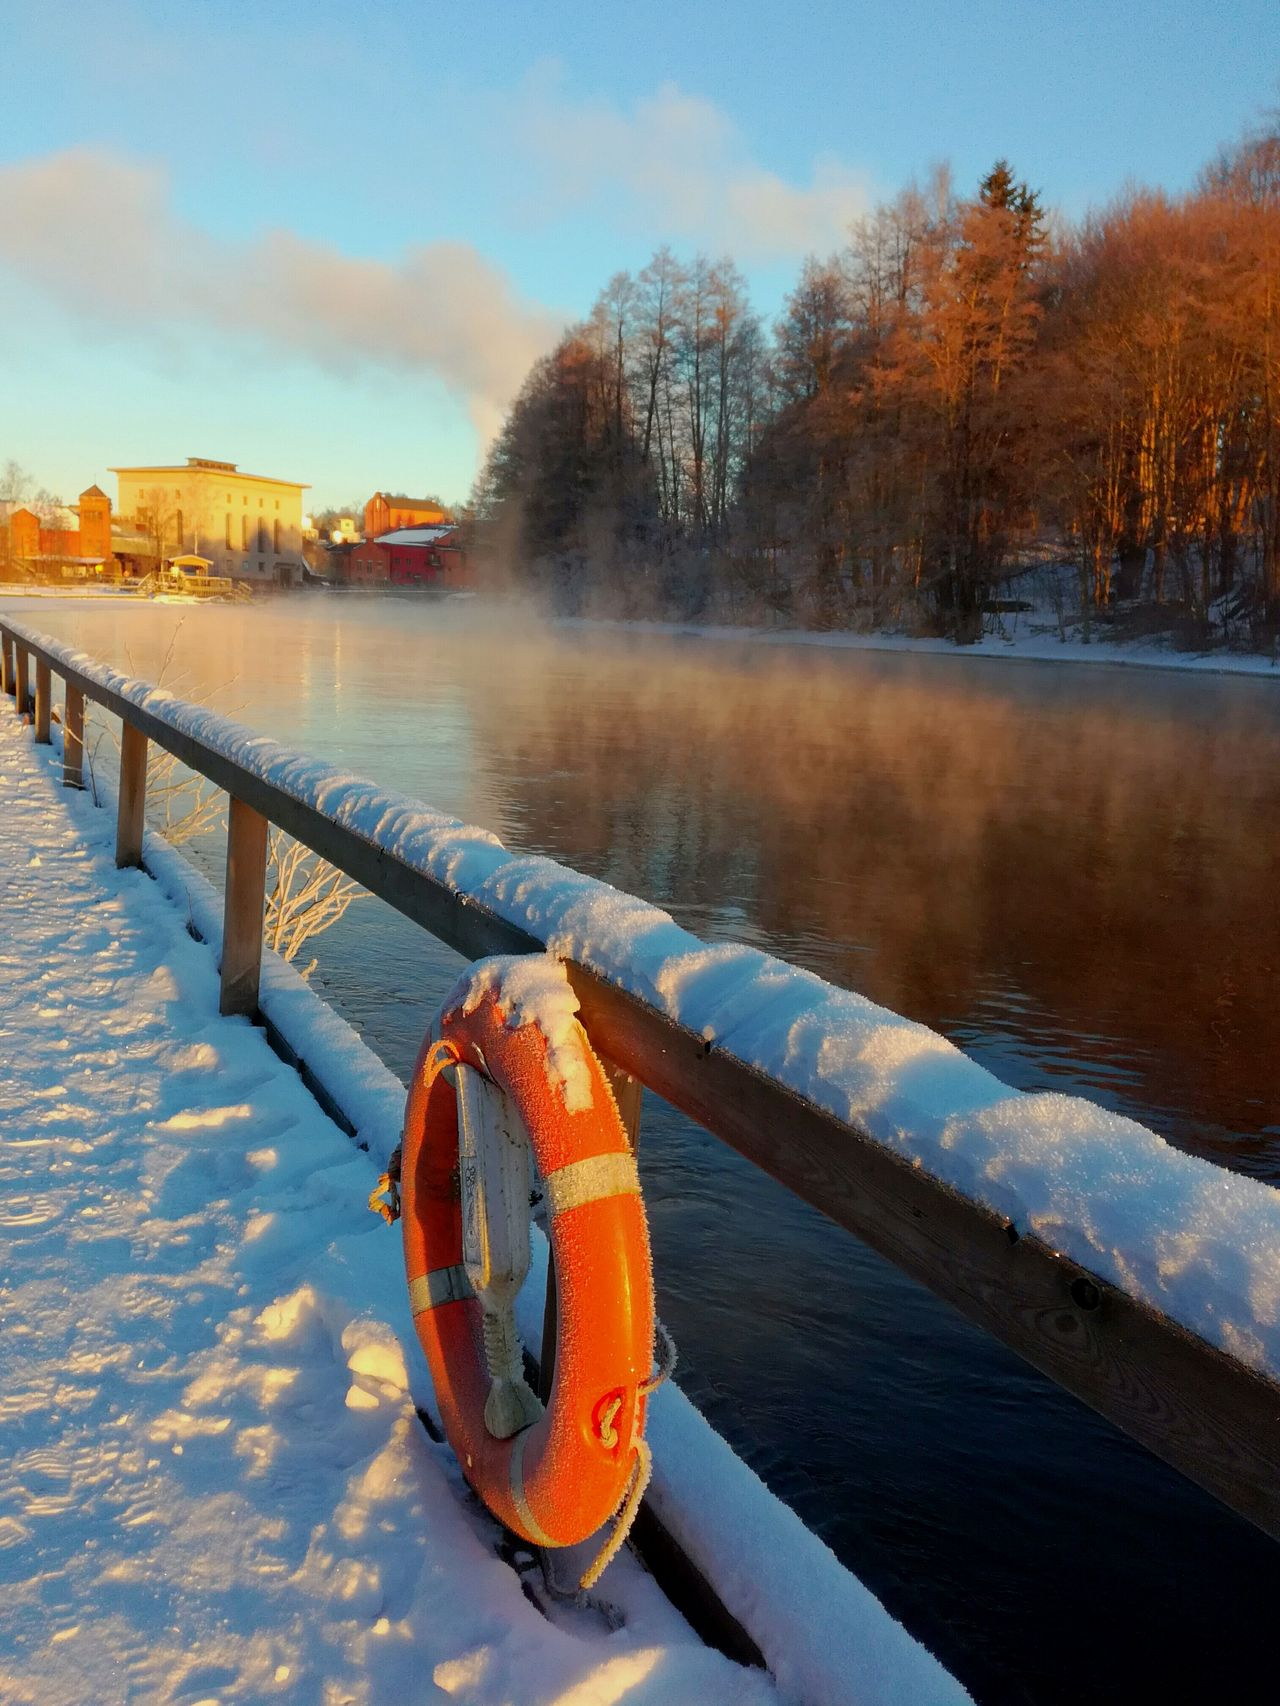 Water Sky Outdoors Nature No People Trees Steam Kotka, Finland Korkeakoski Sunlight Ice Cold Temperature Frozen River Winter Sun River Light And Shadow Misty Morning Beauty In Nature Tranquil Scene Sun Morning Wintertime Pier Life Saver